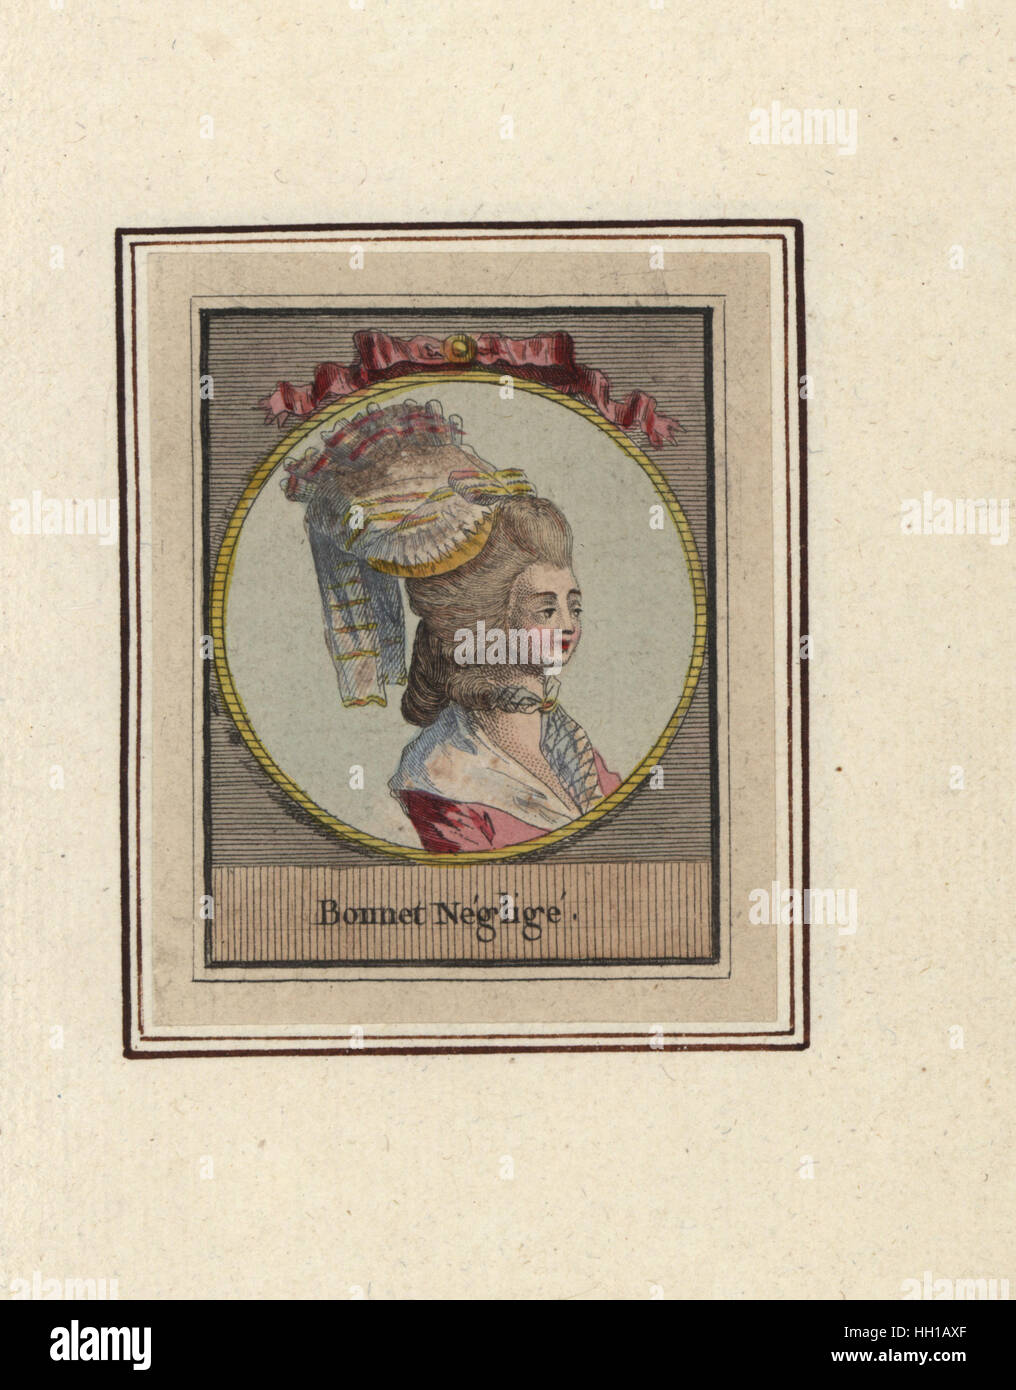 Woman in a rumpled bonnet. Bonnet neglige. Handcoloured copperplate engraving by an unknown artist from an Album - Stock Image